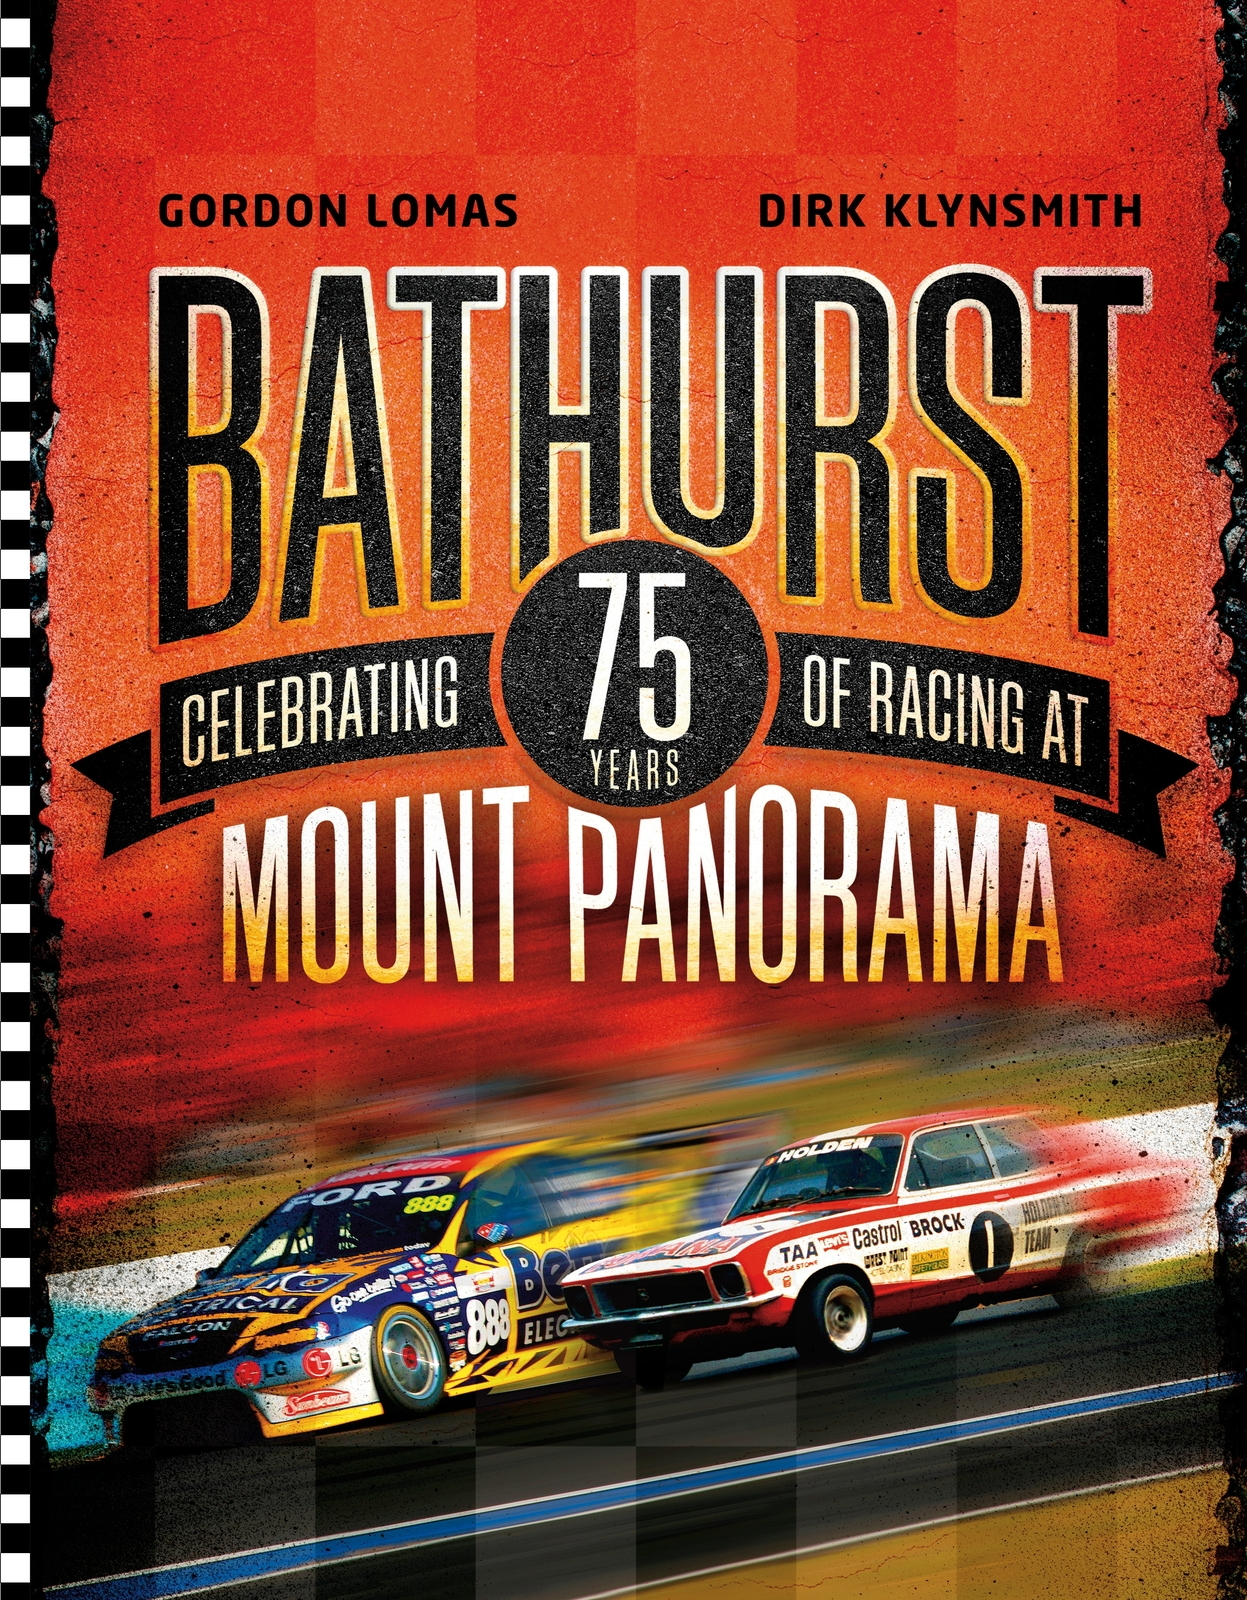 Bathurst: Celebrating 75 Years Of Racing At Mount Panorama by Dirk Klynsmith image